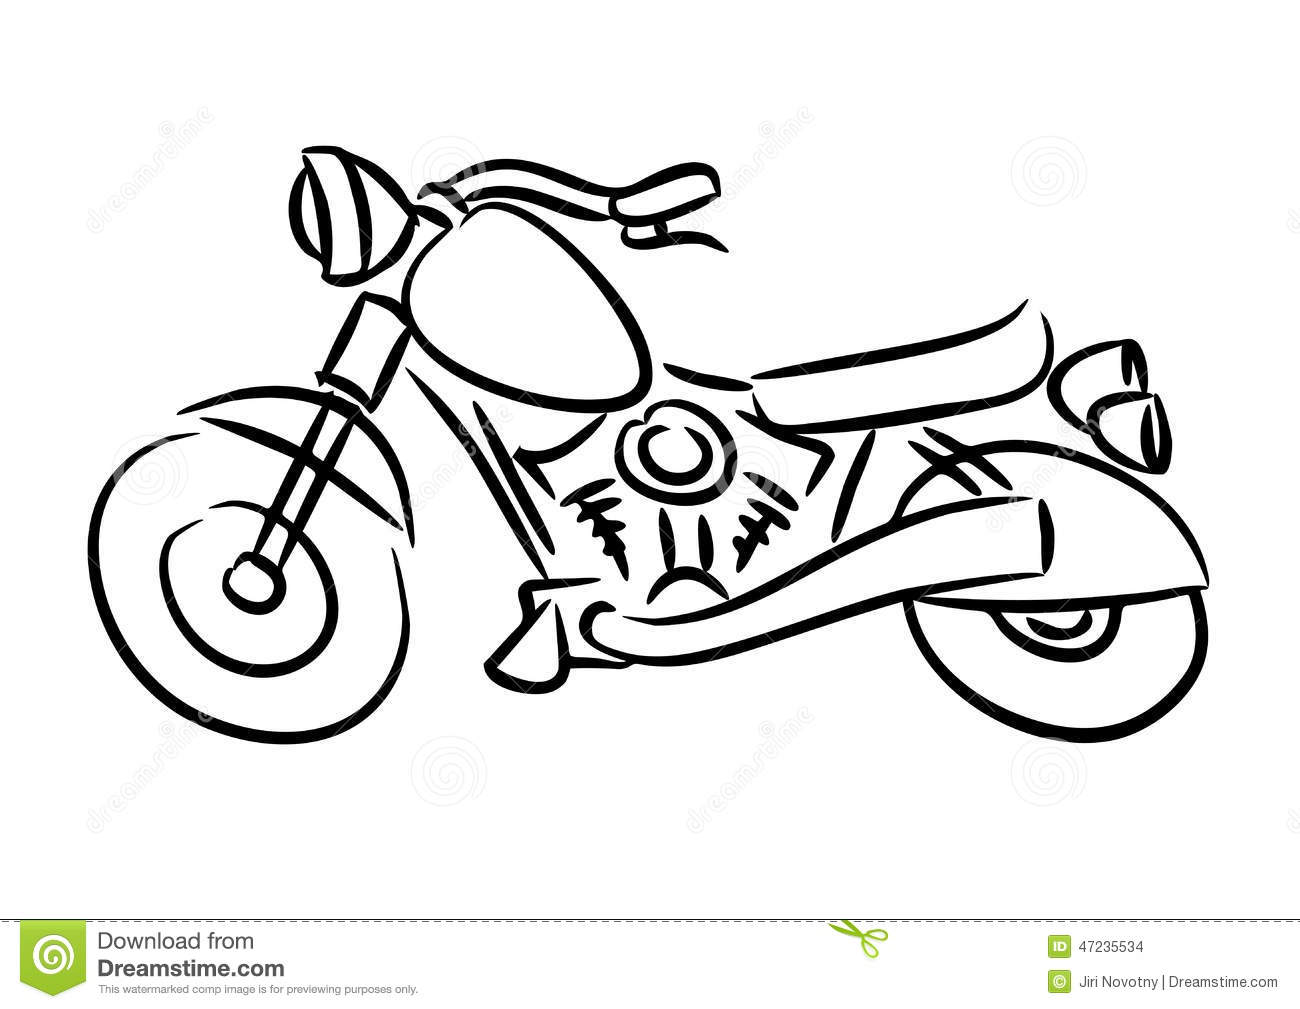 The Chopper Motorcycle Stock Illustration